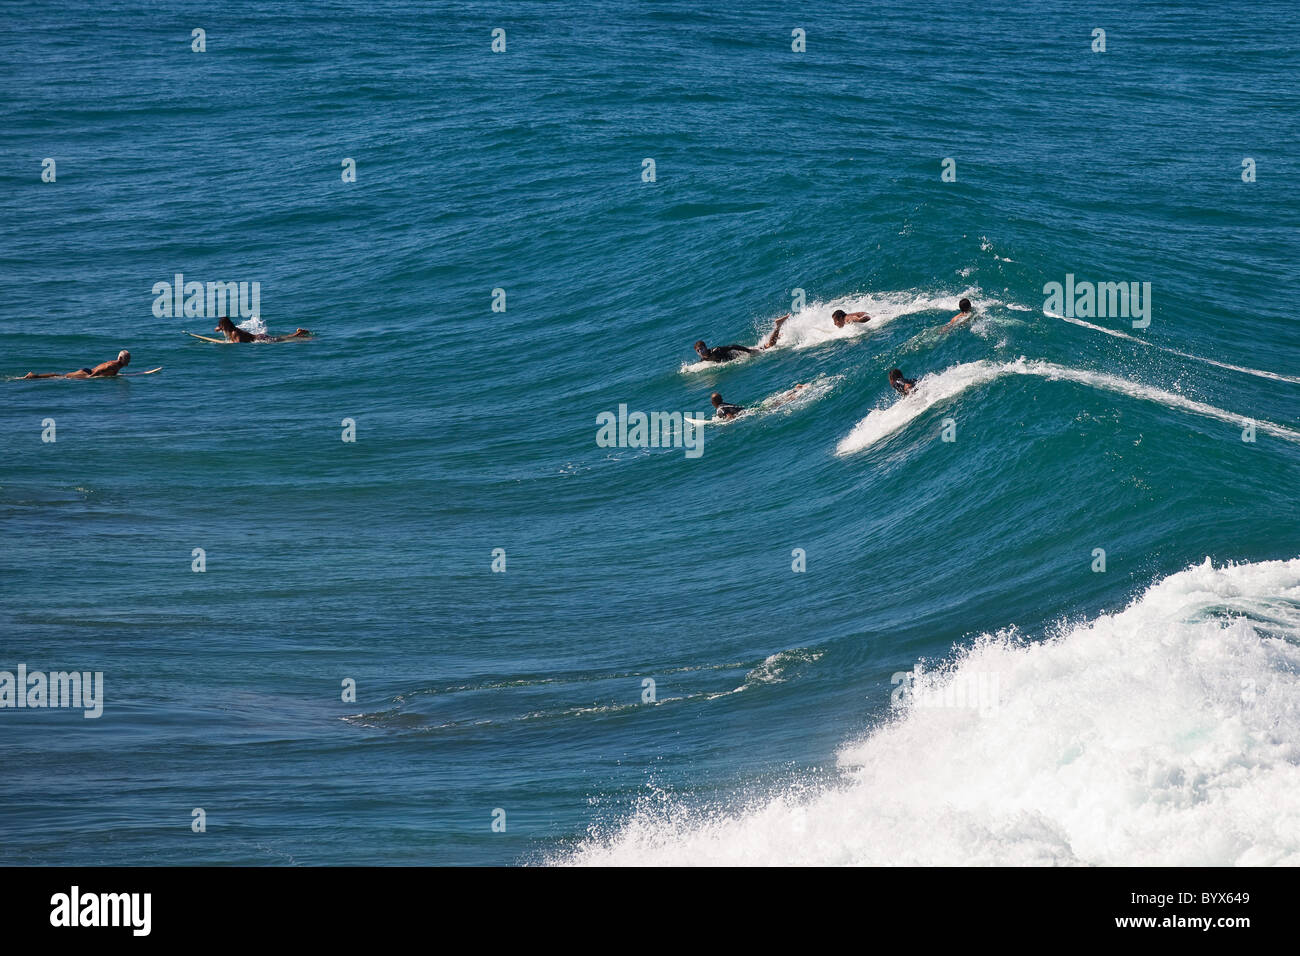 Surfers at Indicators beach in Rincon Puerto Rico - Stock Image